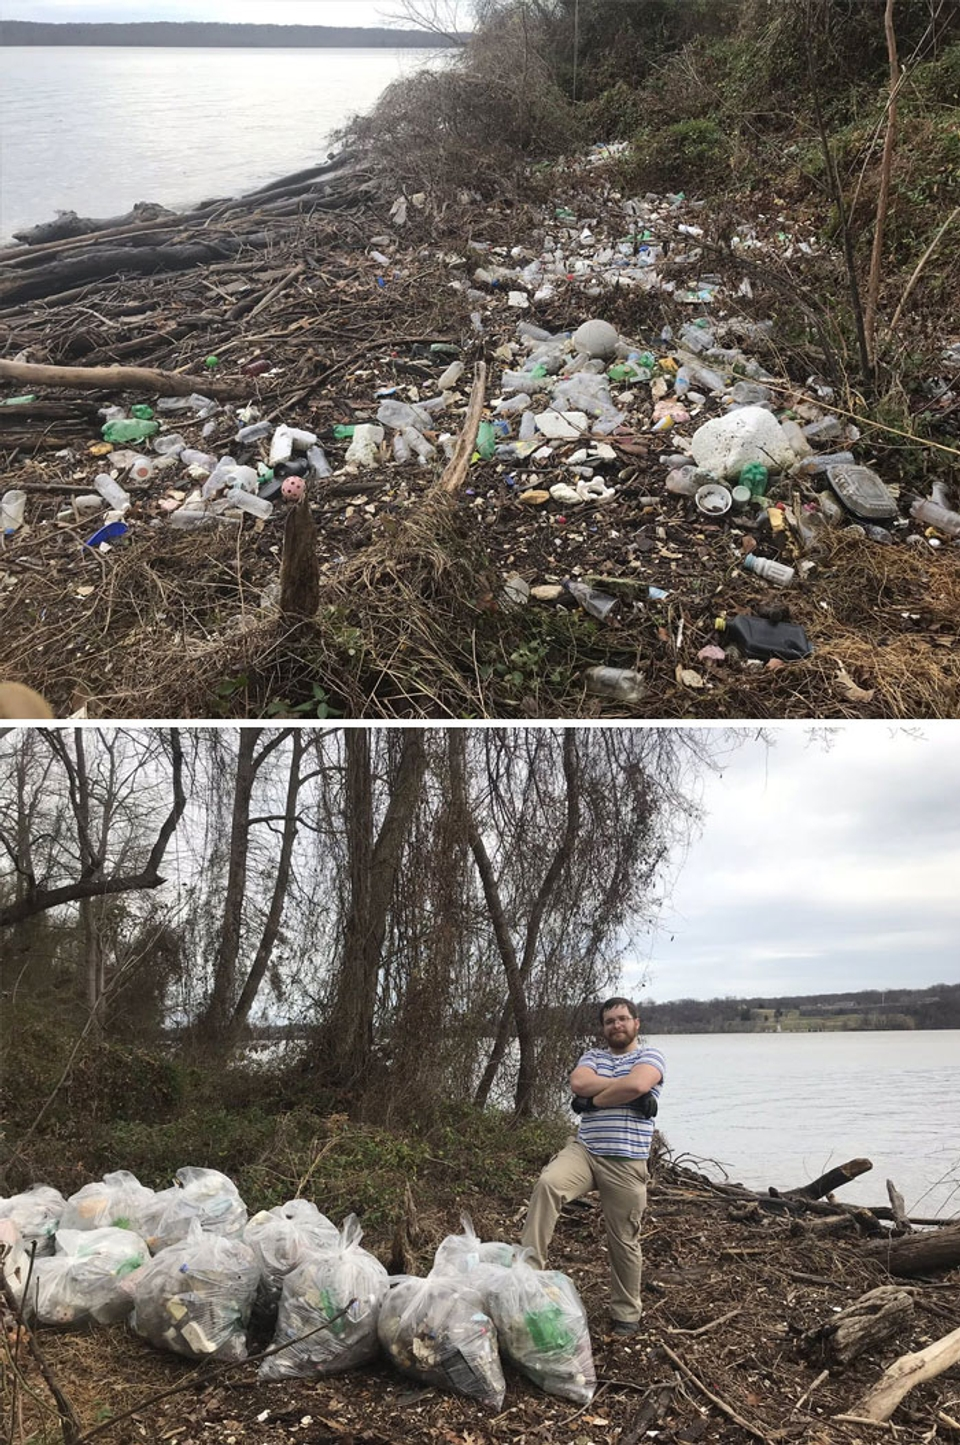 trashtag-challenge-people-clean-surroundings-102-5c8657638ca49__700